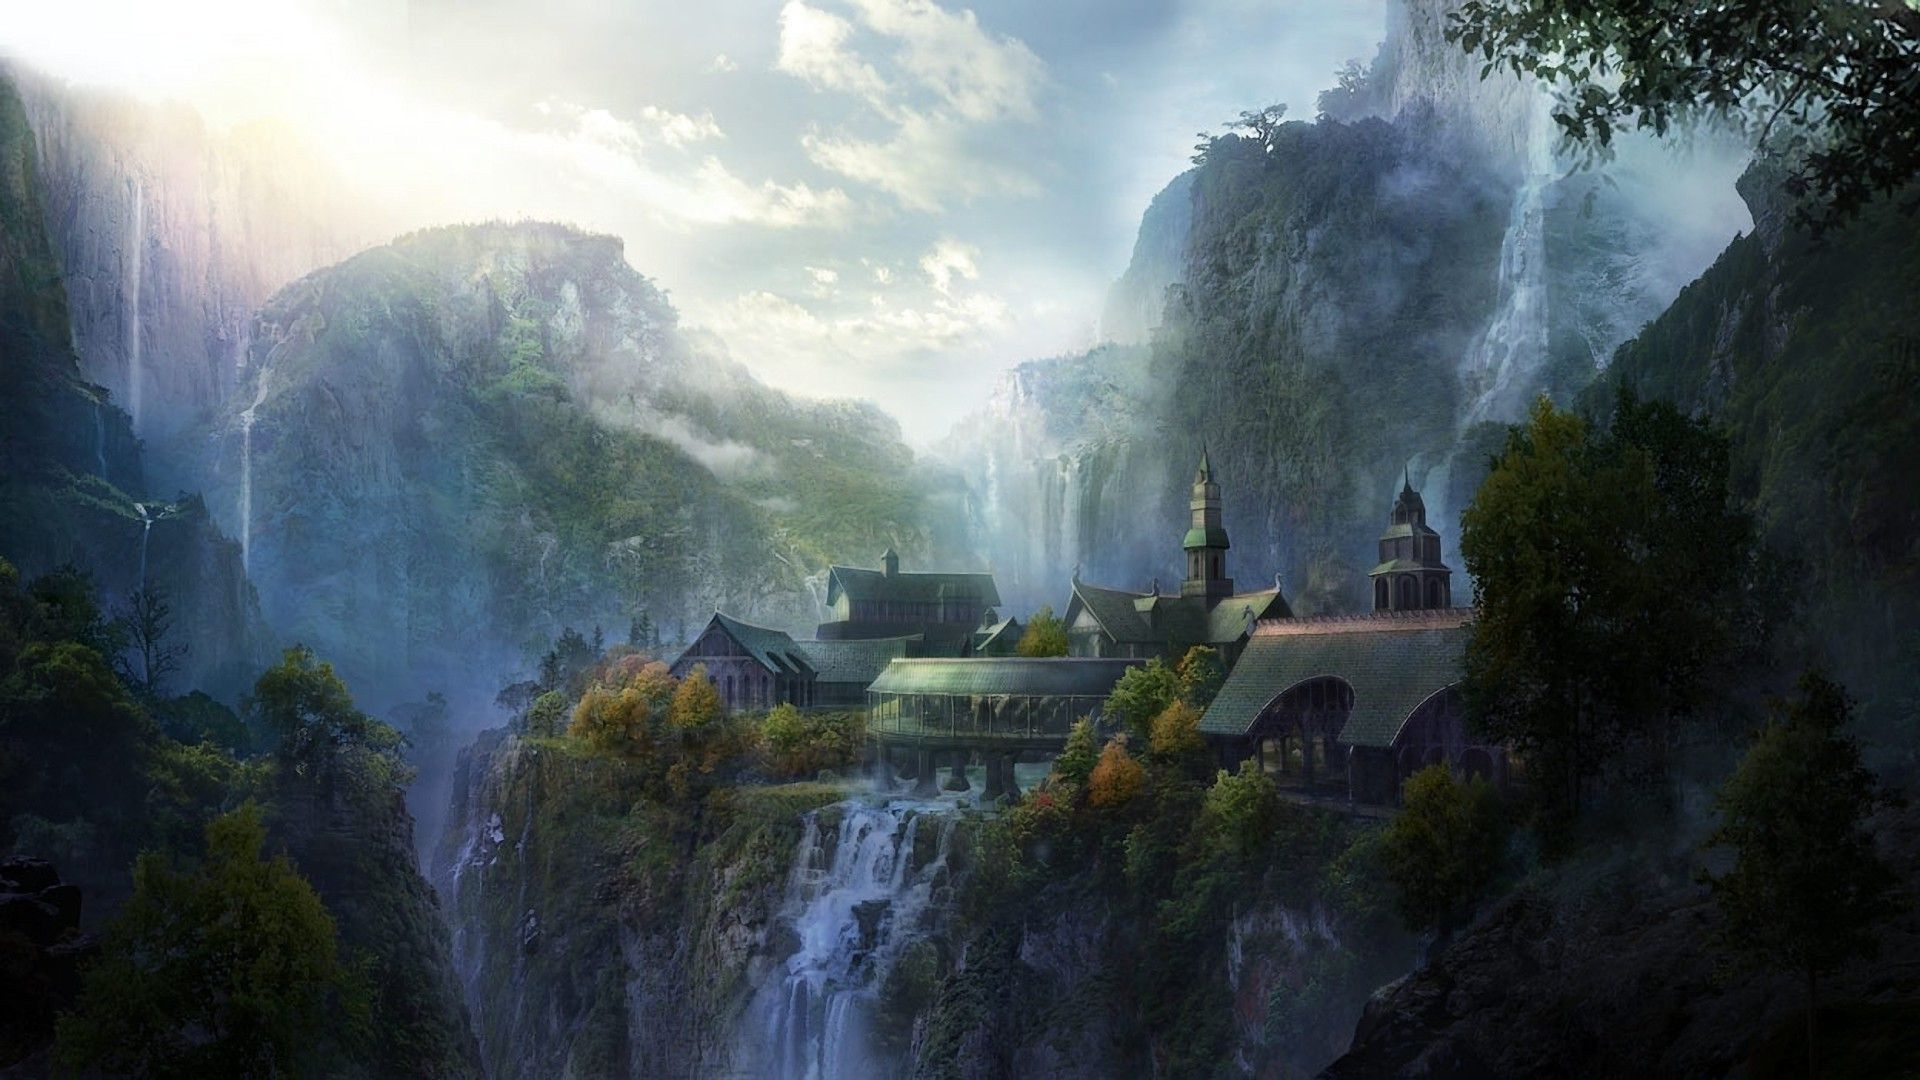 4k Lord Of The Rings Wallpapers Top Free 4k Lord Of The